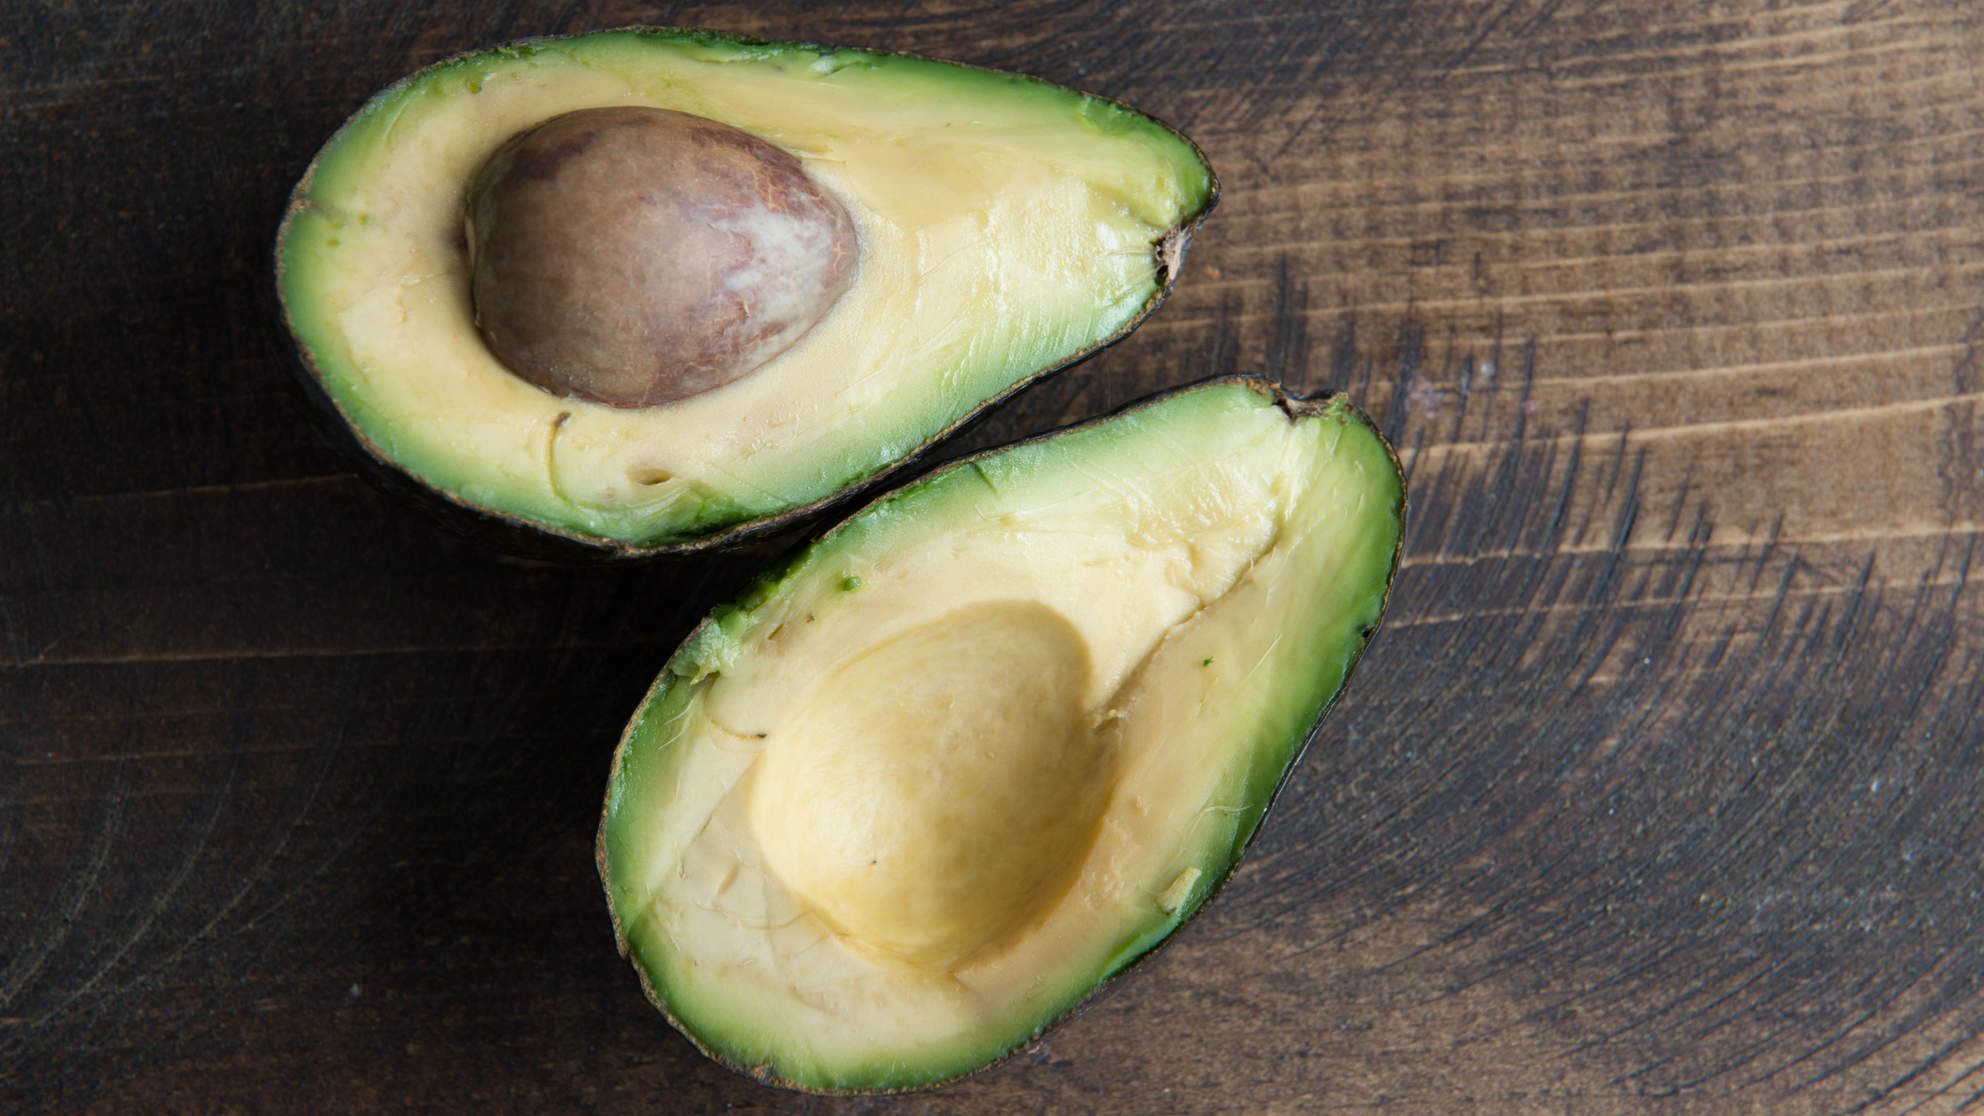 You Can Now Participate in a Study That Will Pay You to Eat Avocados (and Maybe Lose Weight)